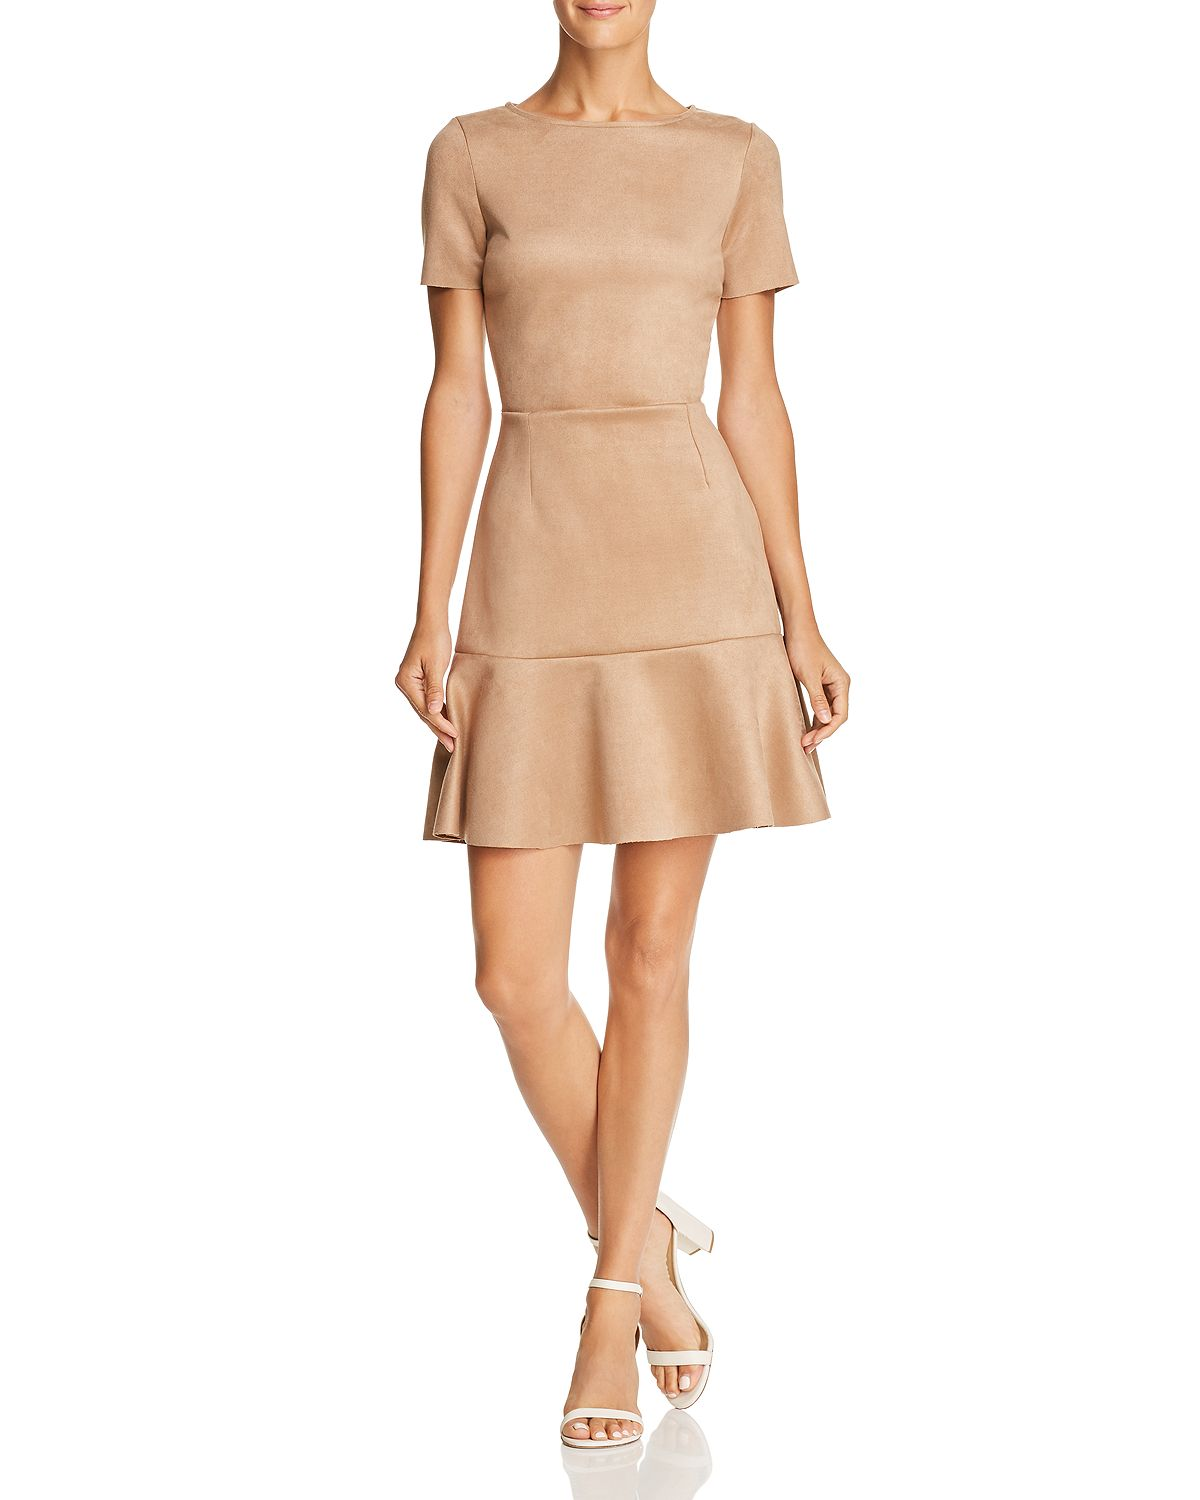 taupe faux suede dress bloomingdale's sale